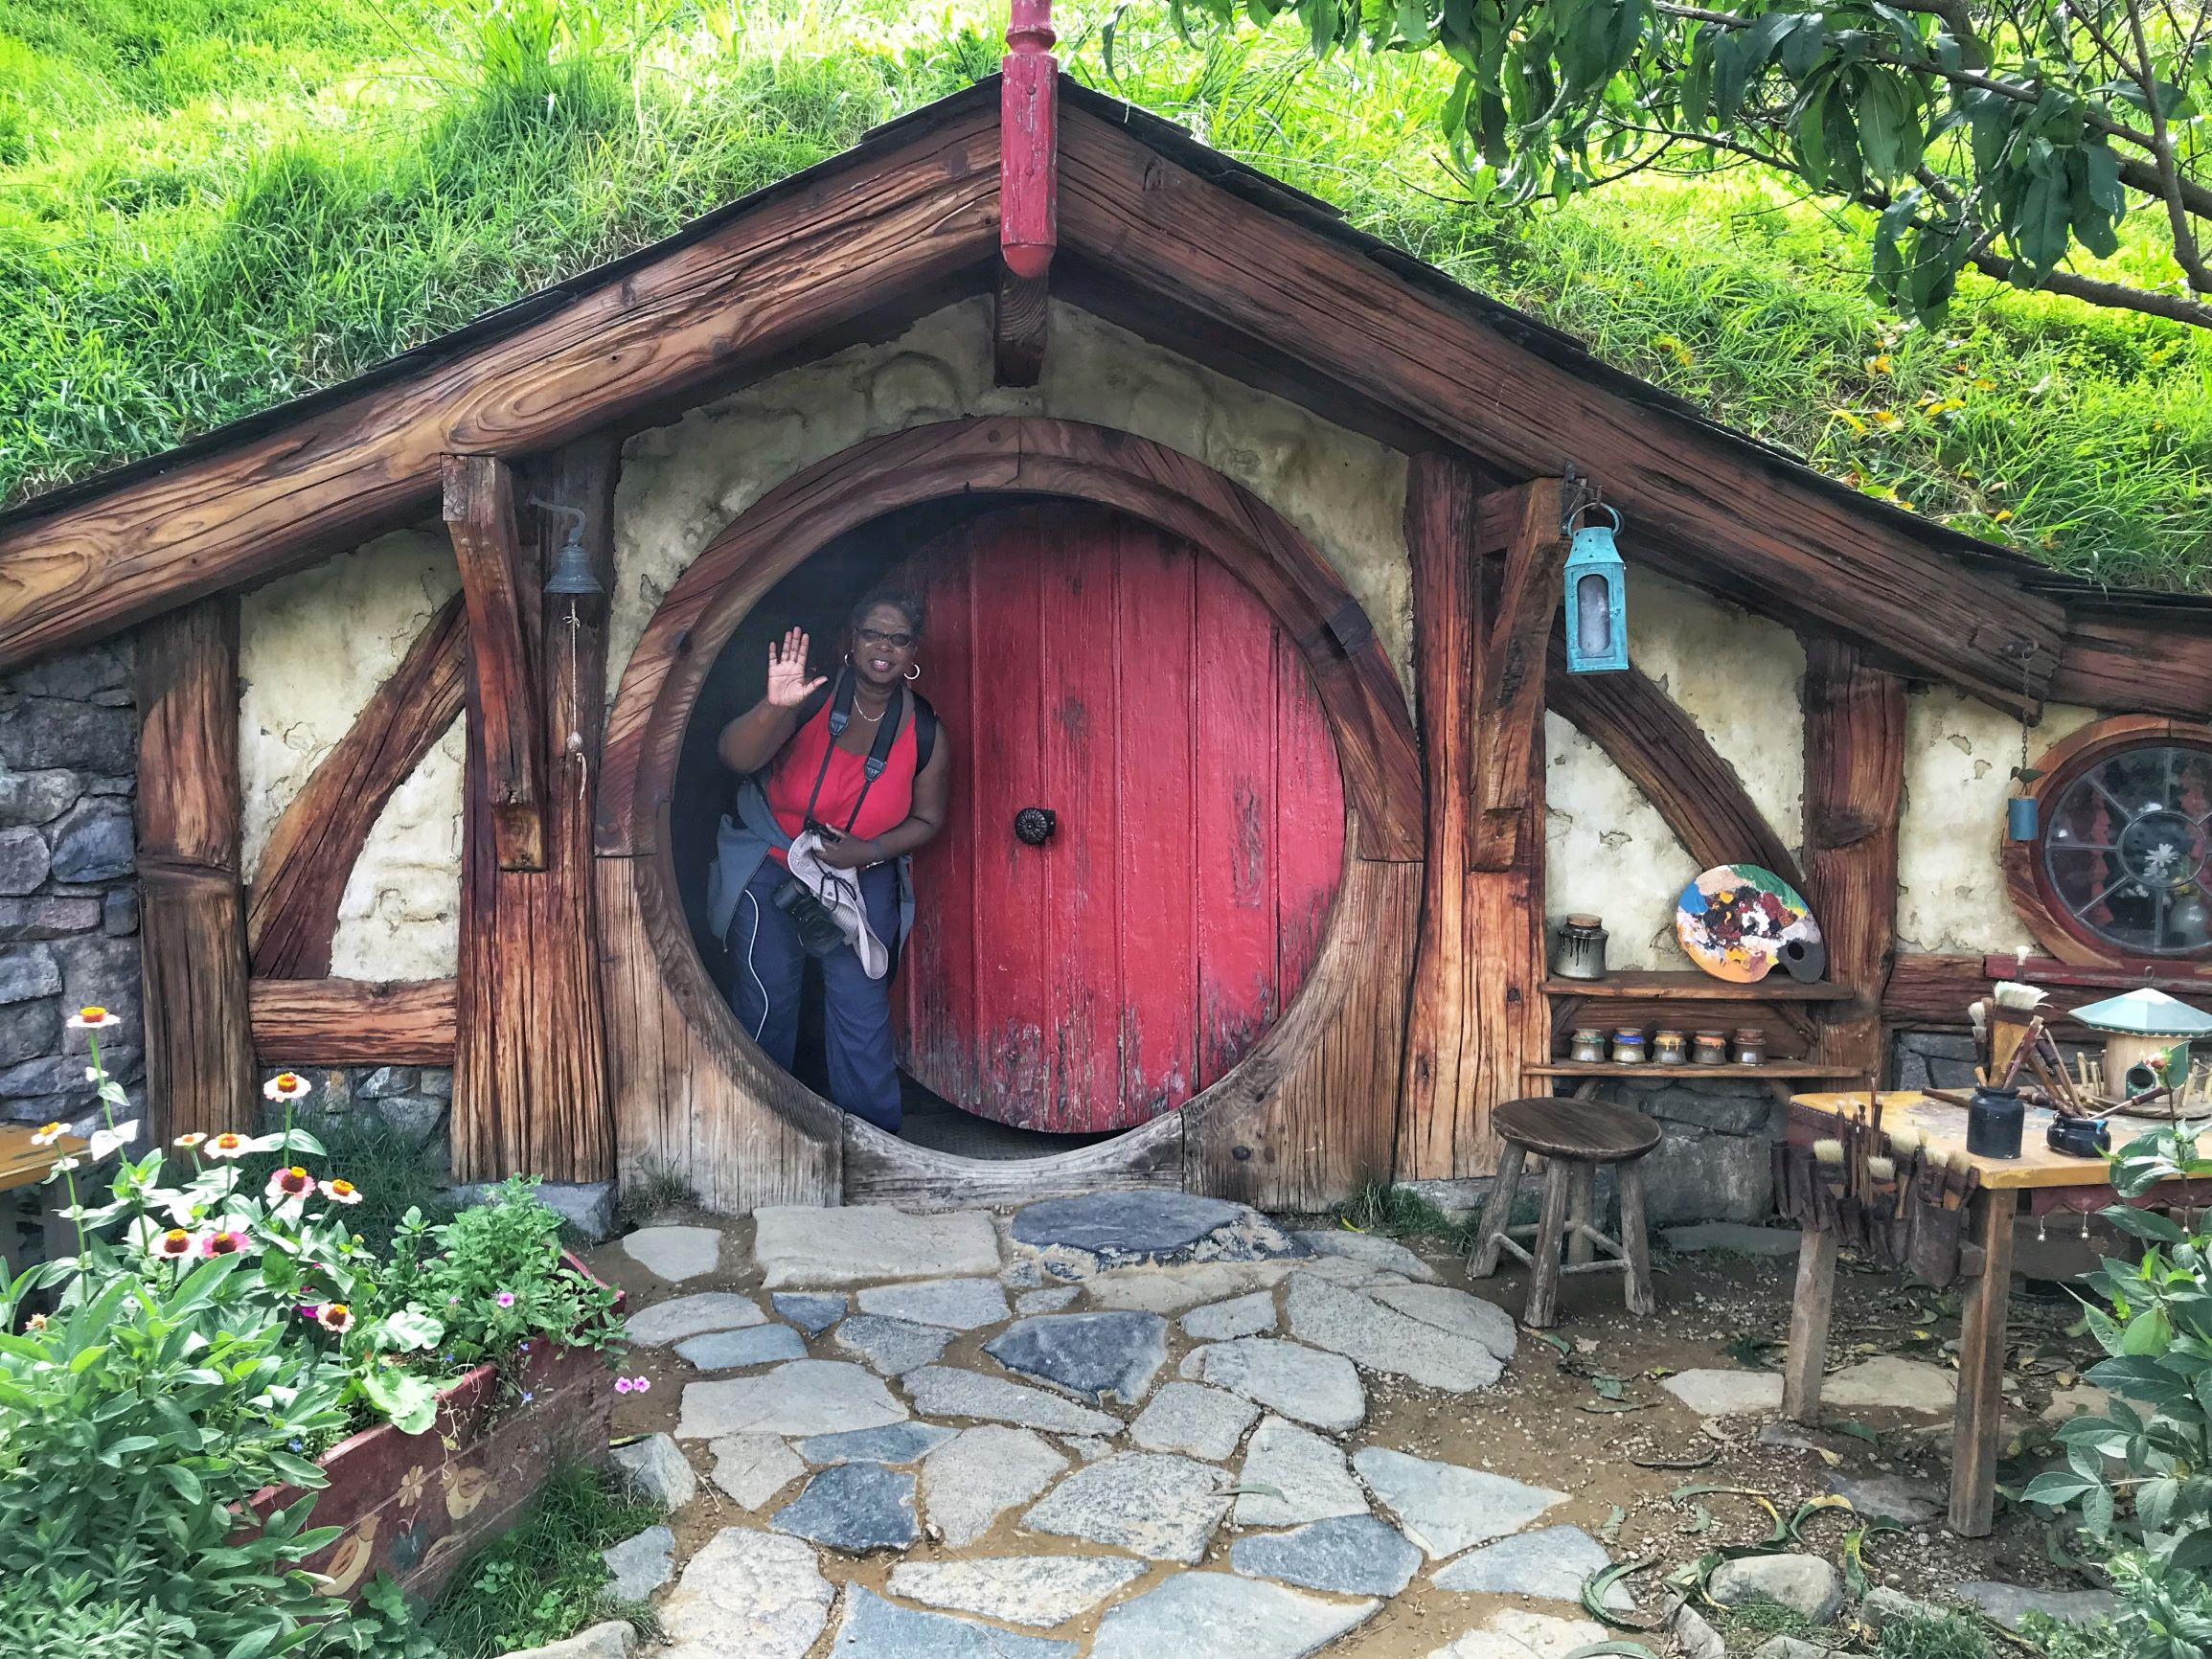 Danielle Lewis, owner of SelfishMe Travel LLC at the Hobbiton Movie Set in Matamata, New Zealand - image taken with an iPhone 7